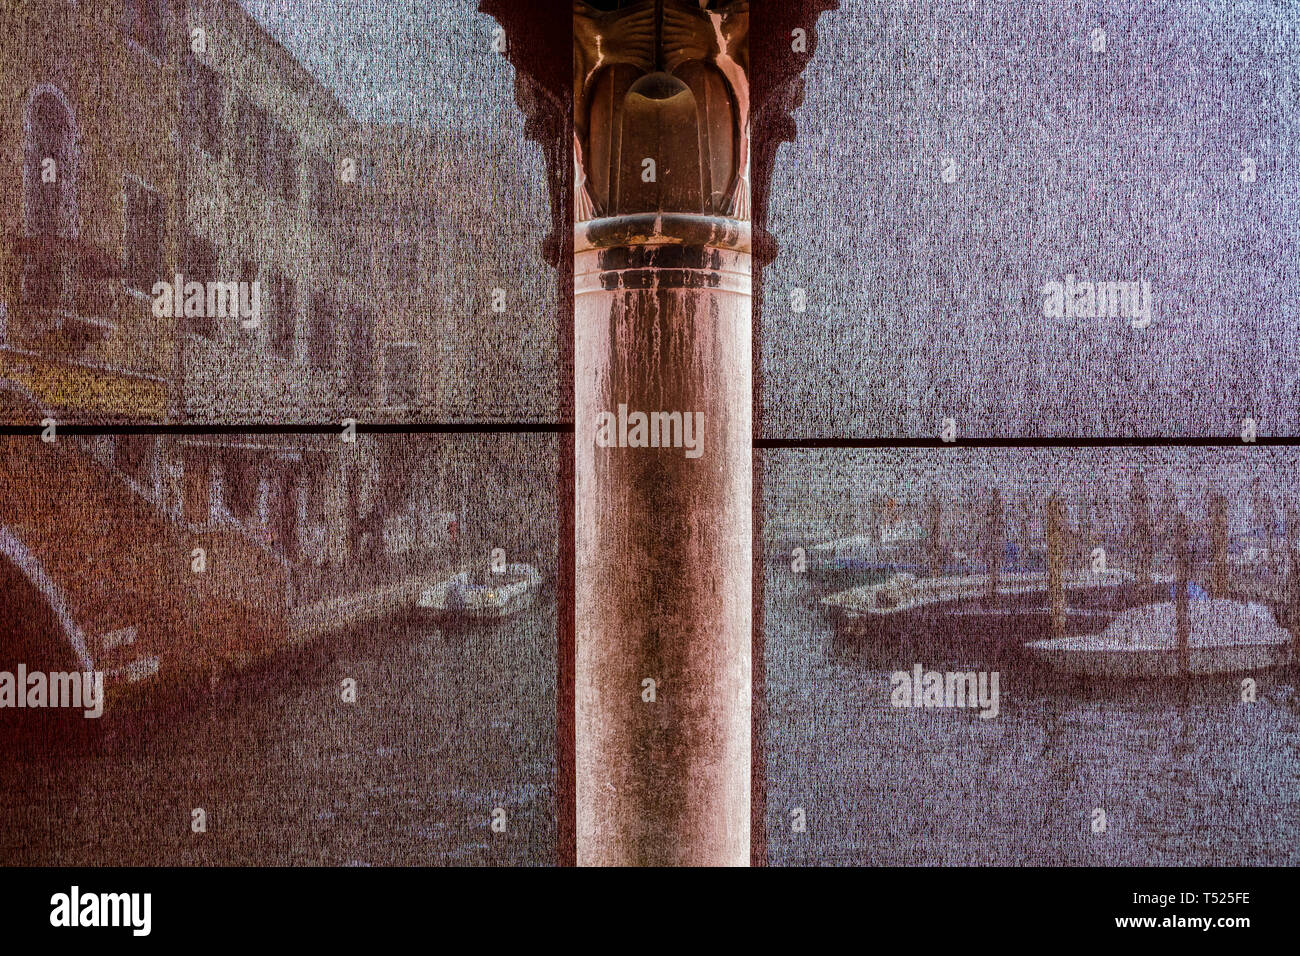 The view of the Grand Canal through screens divided by a column in the Venice Fish Market, Italy. - Stock Image